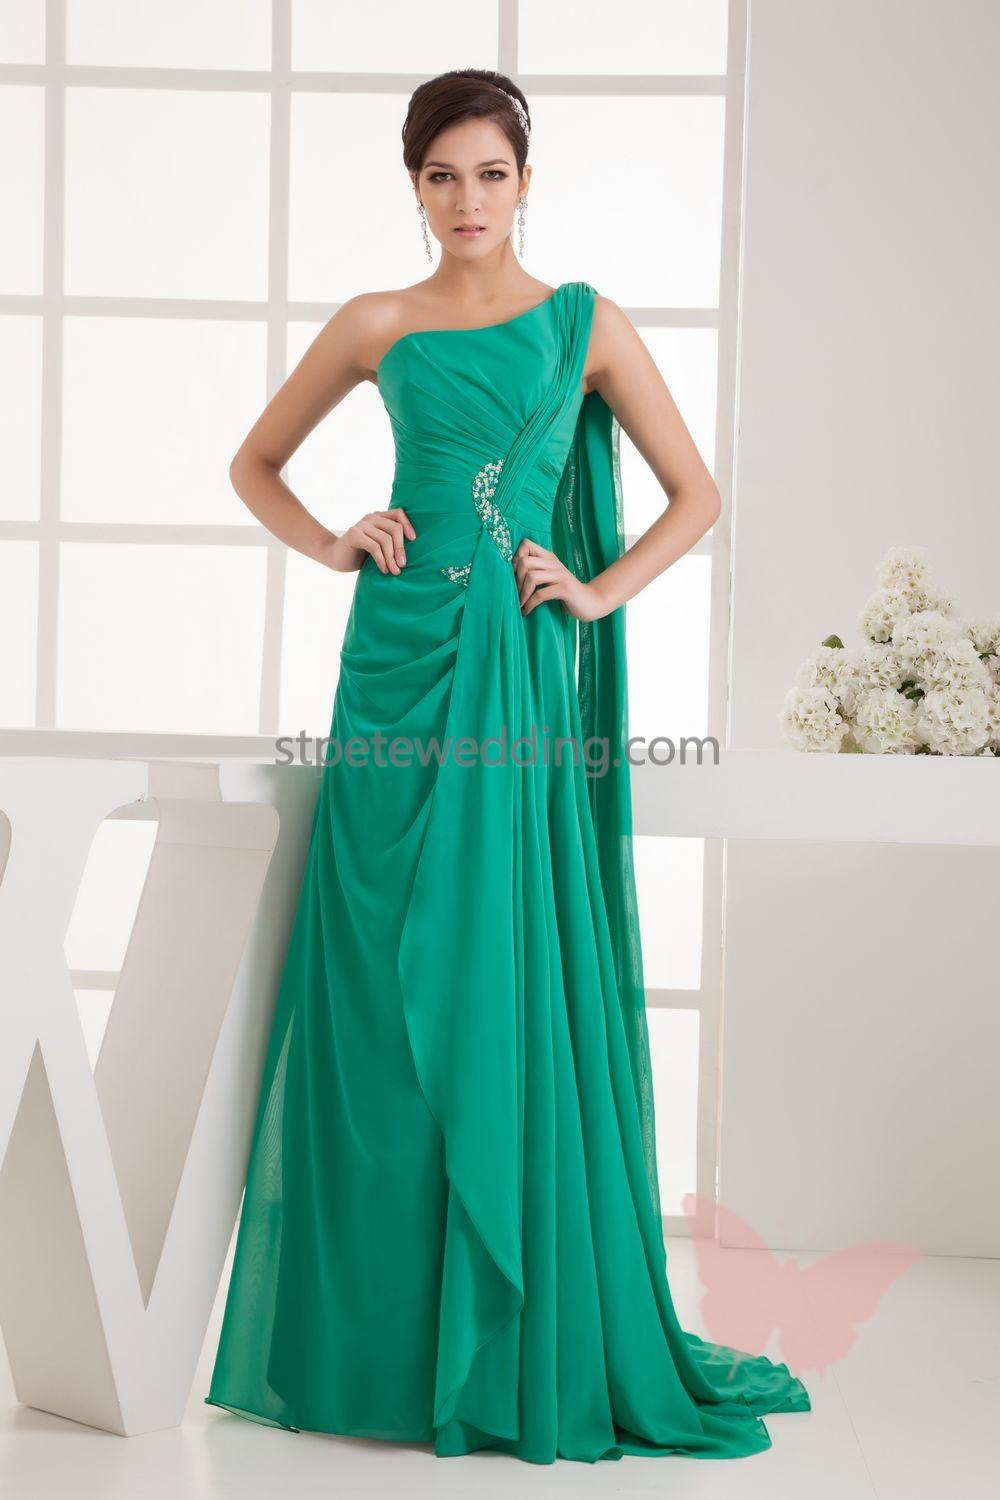 Style Custom-made Prom Dress Satin Silk and Prosperous Cotto|WD4 ...